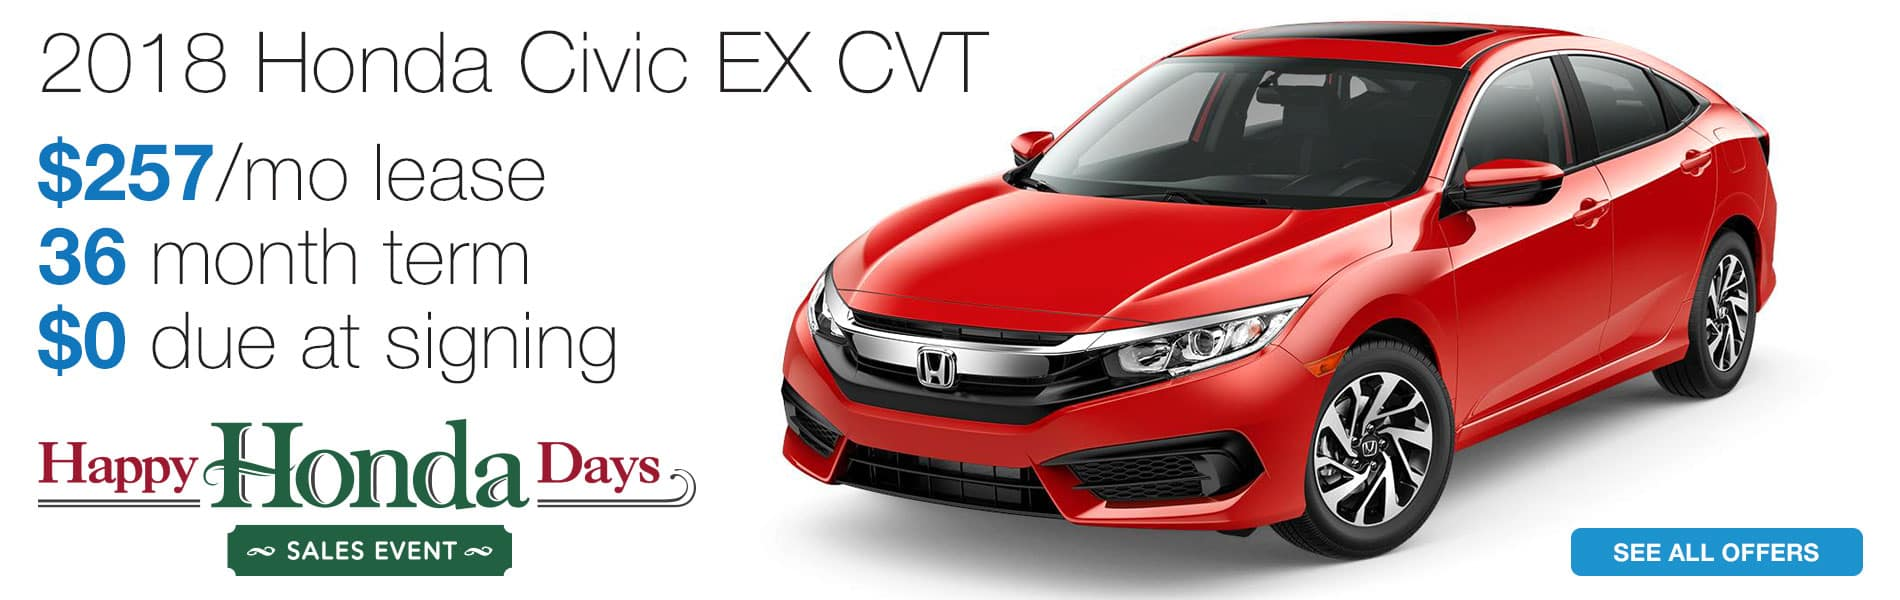 Lease a 2018 Honda Civic EX for $257 per month lease with $0 due at signing